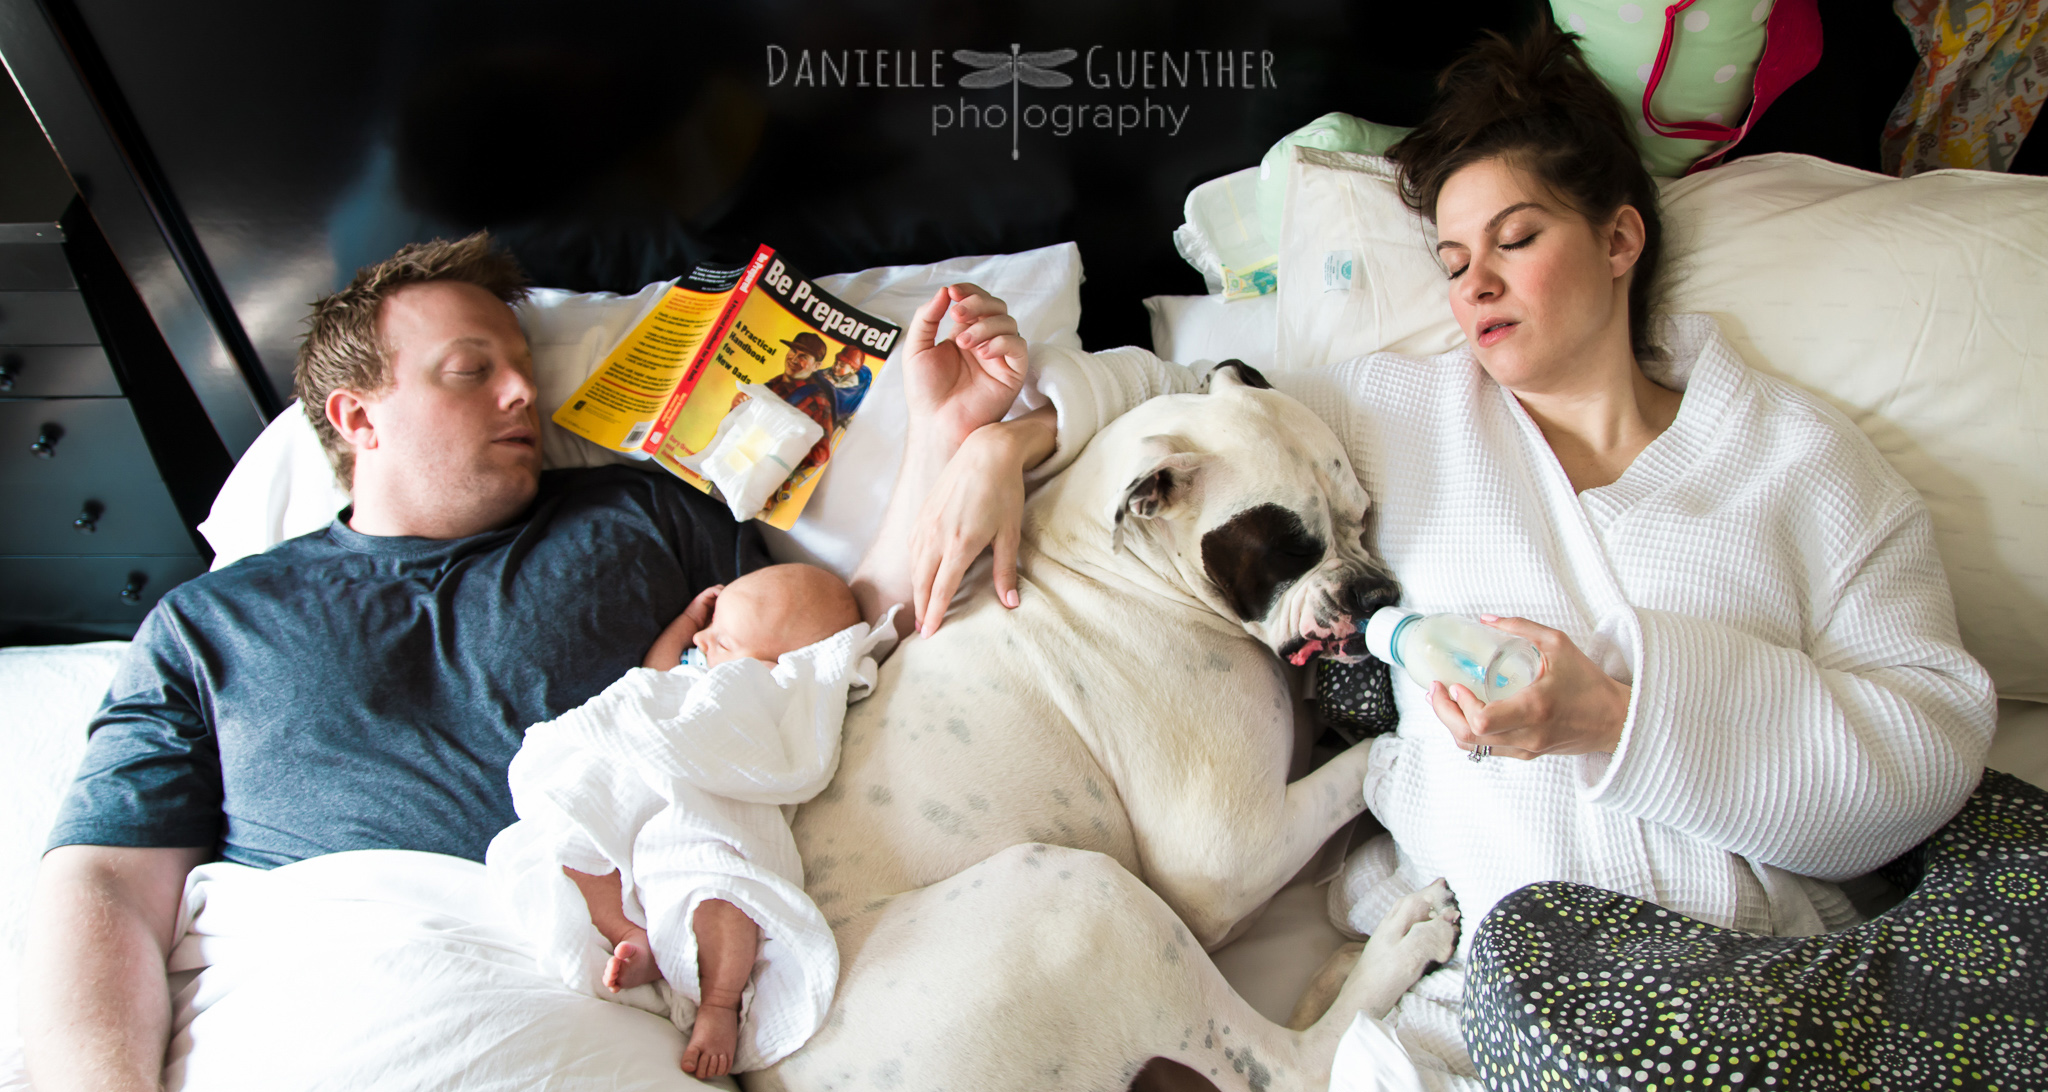 Influencers We Love: Danielle Guenther Photography